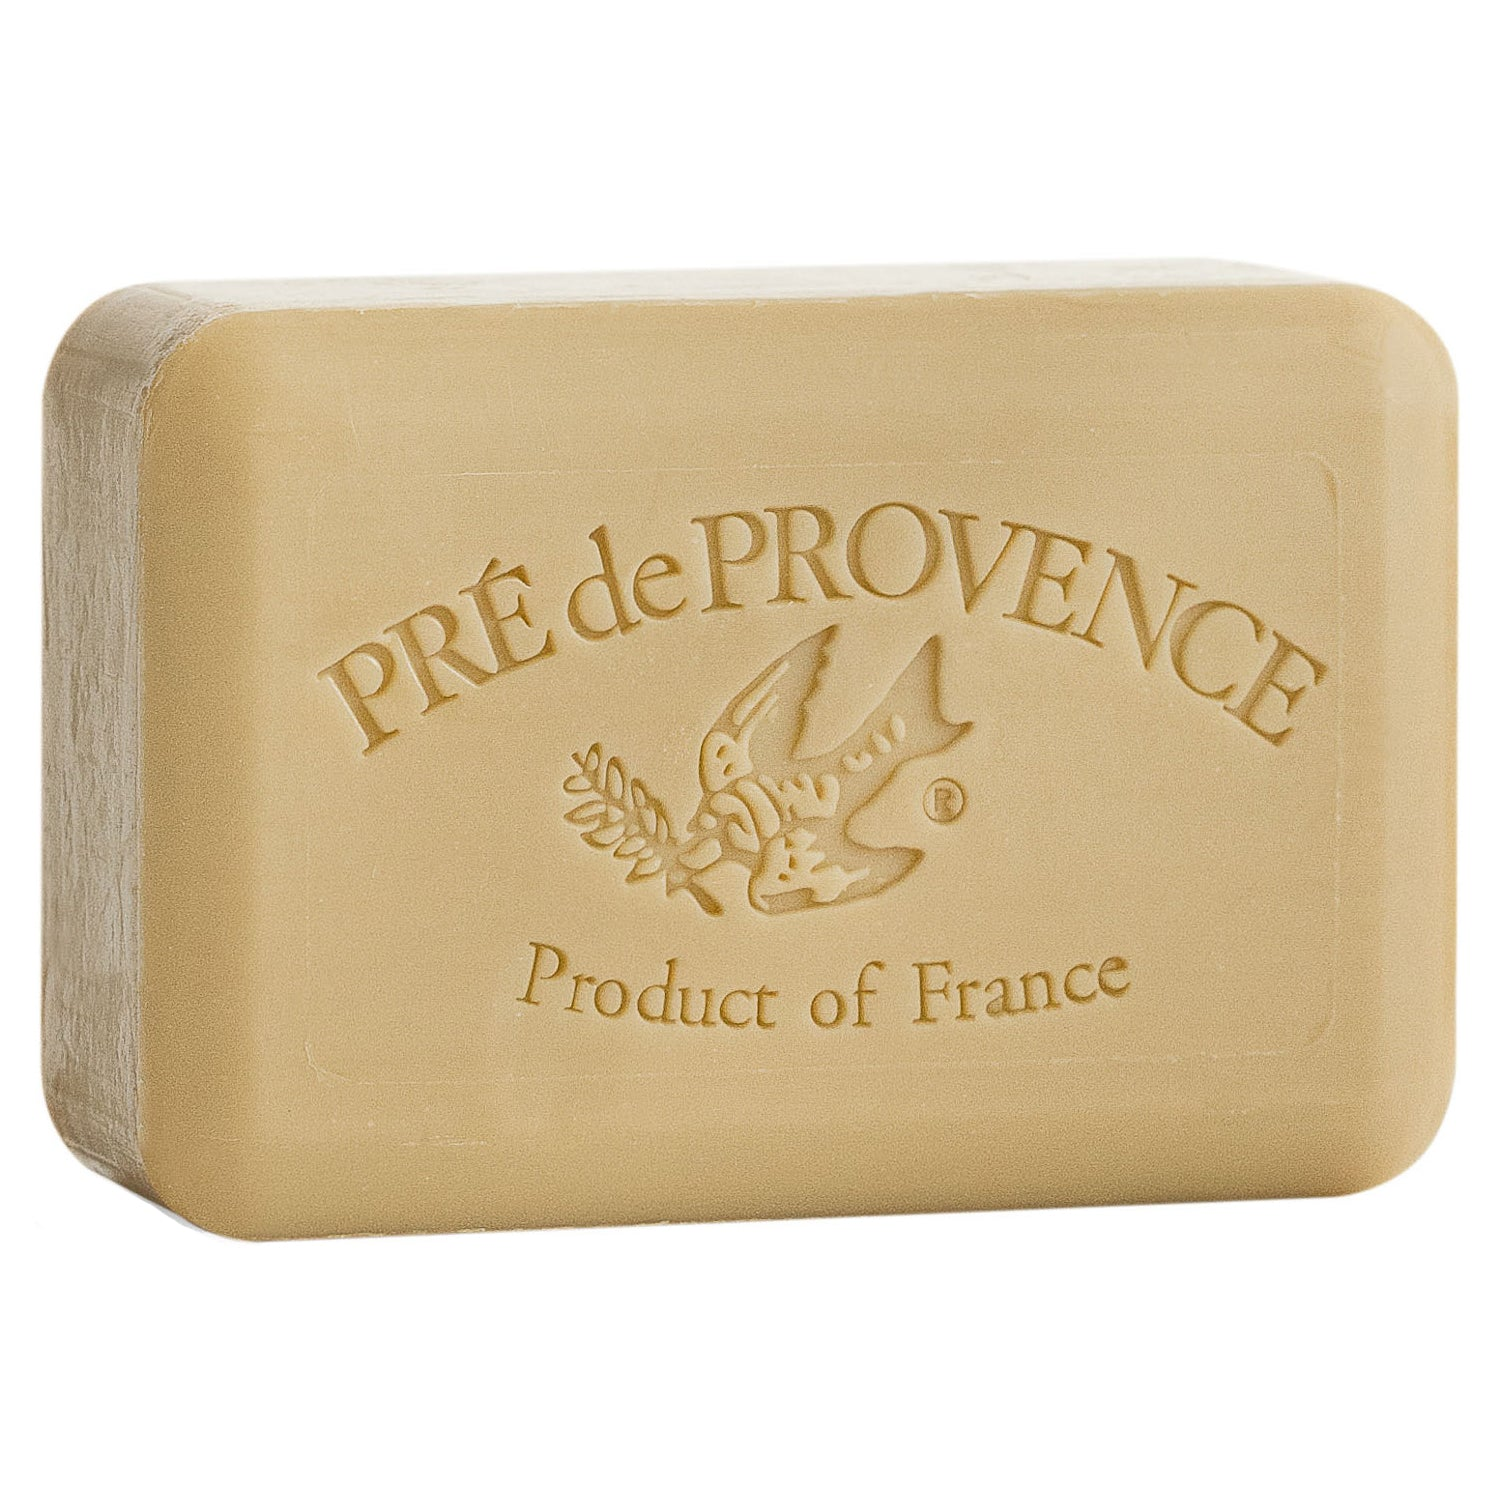 Verbena Soap Bar - 25g, 150g, 250g